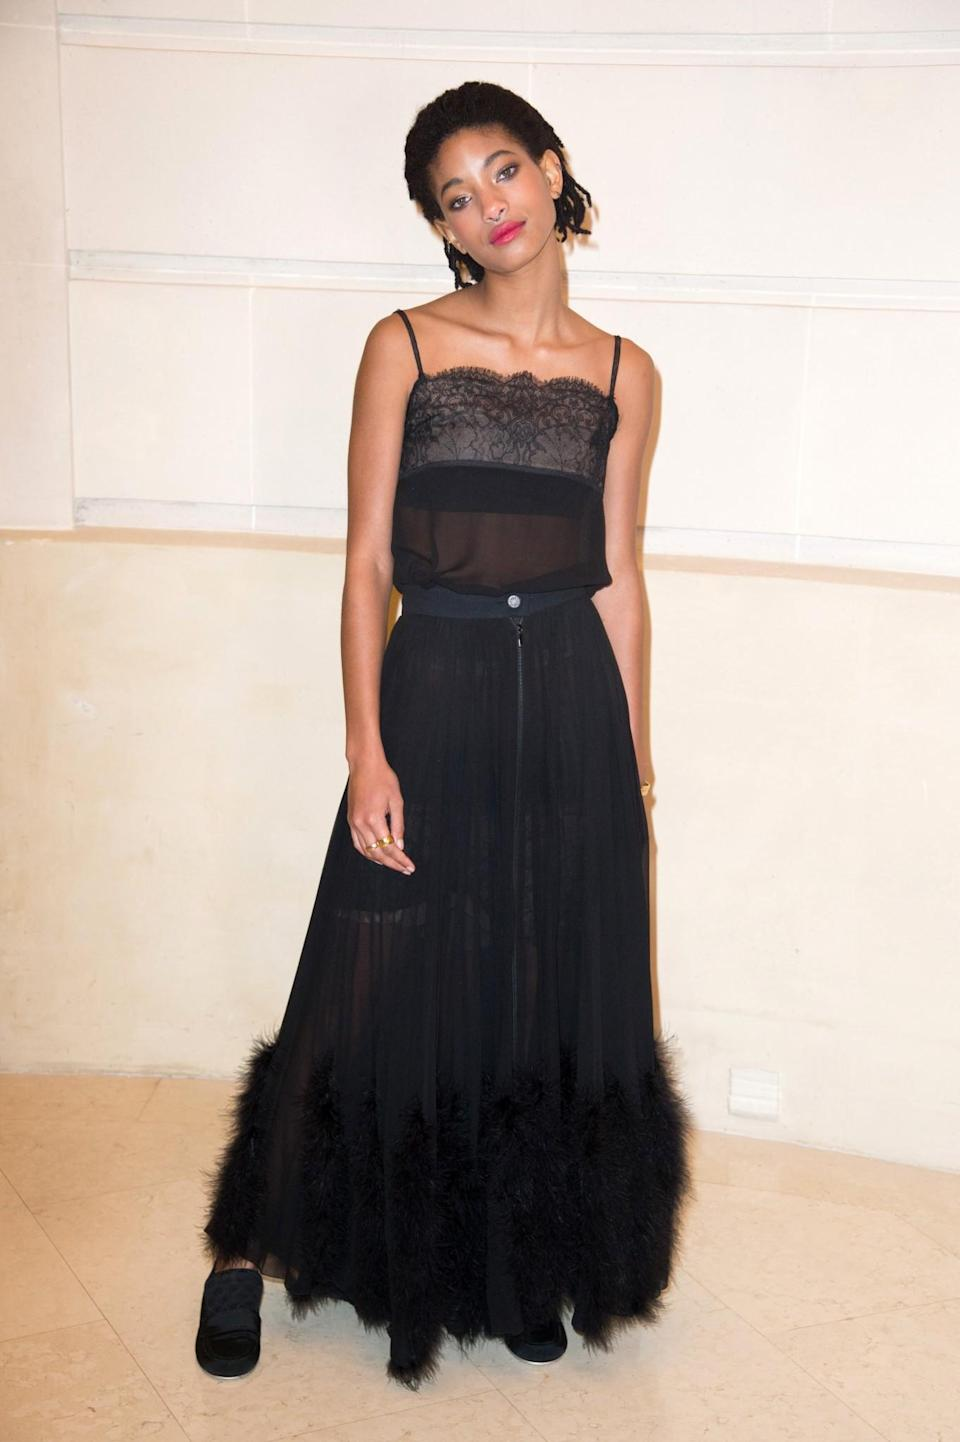 <p>Gone are the days where teenagers wear skirts as short as possible. Today's cool kids, such as Will Smith's youngest, are wearing floor-sweeping maxi skirts teamed with sheer tops. [Photo: Getty] </p>